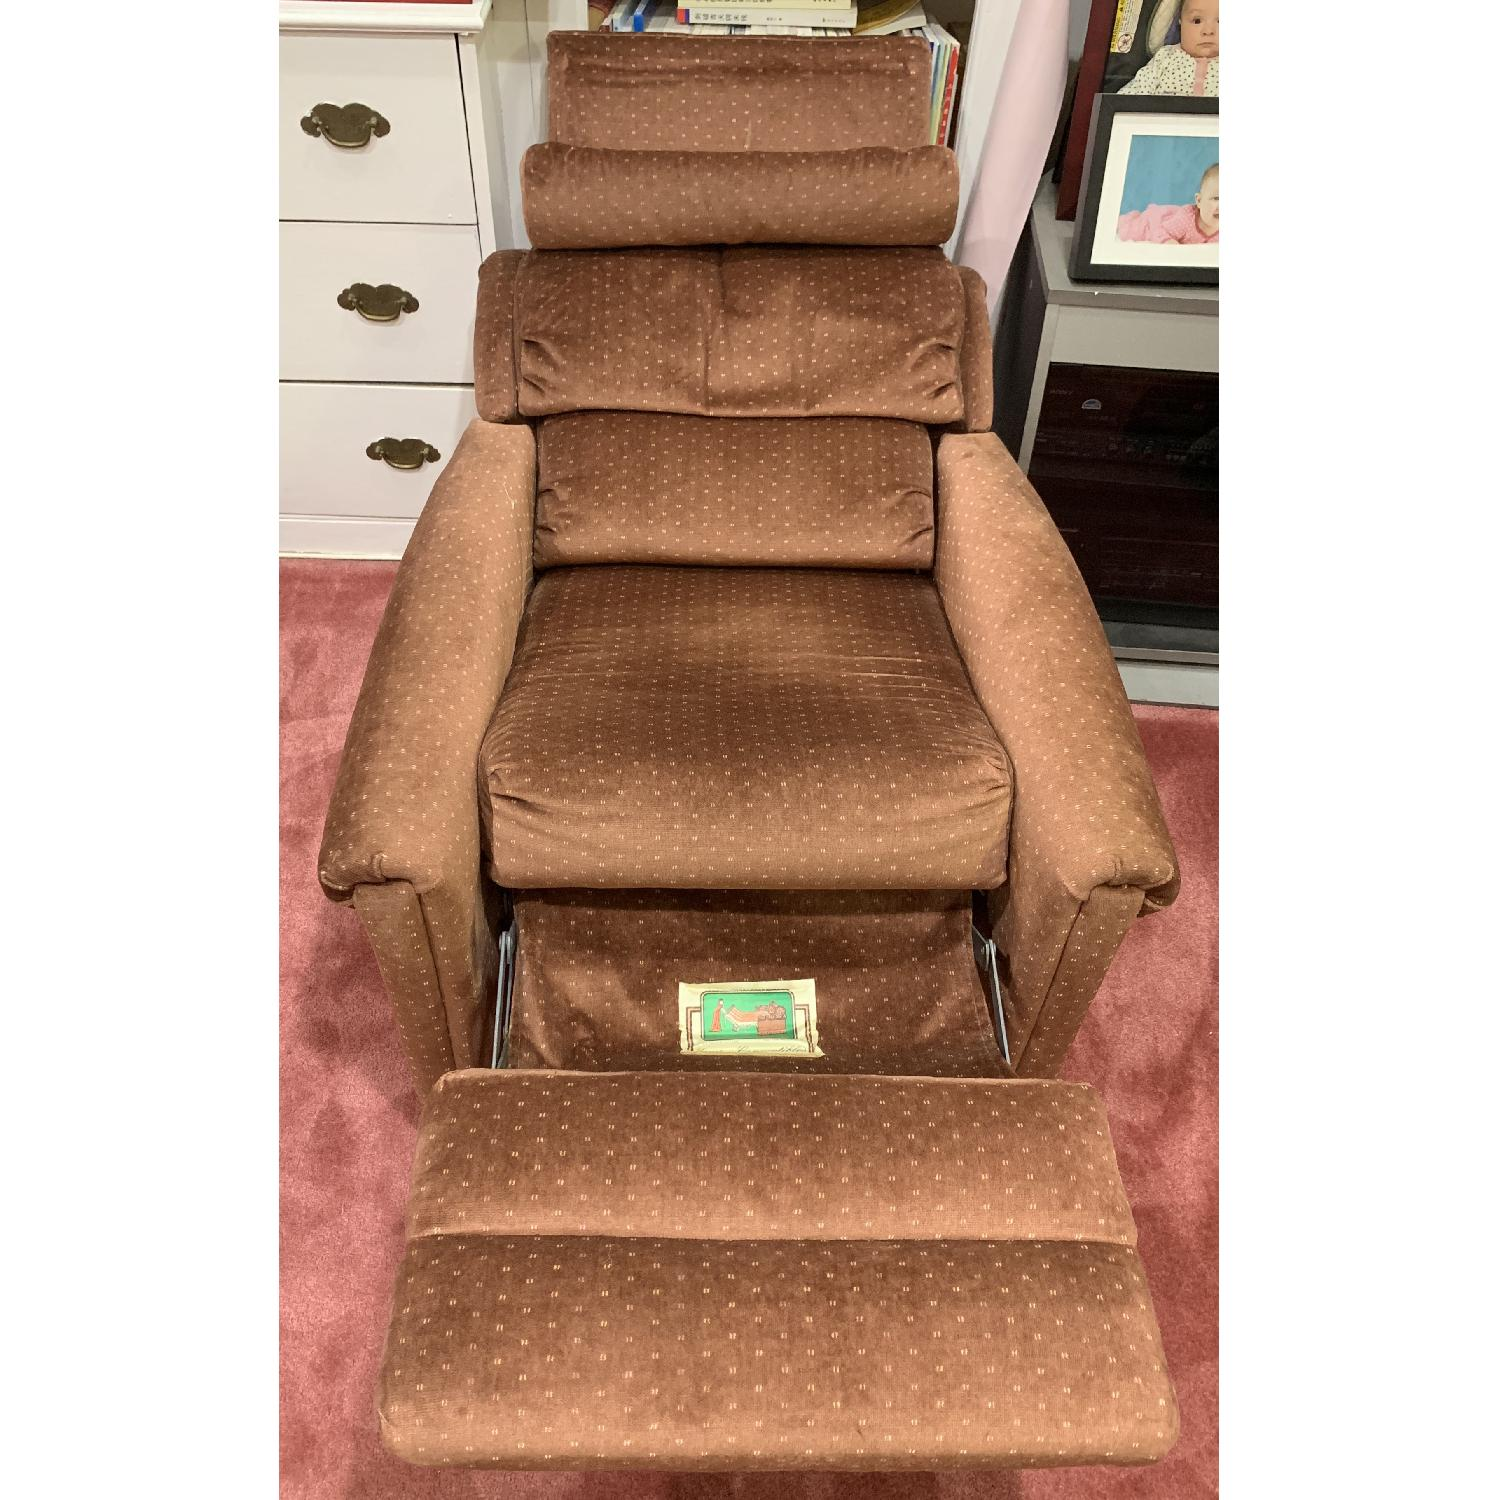 Castro Convertibles Reading/Recliner Chair - image-1